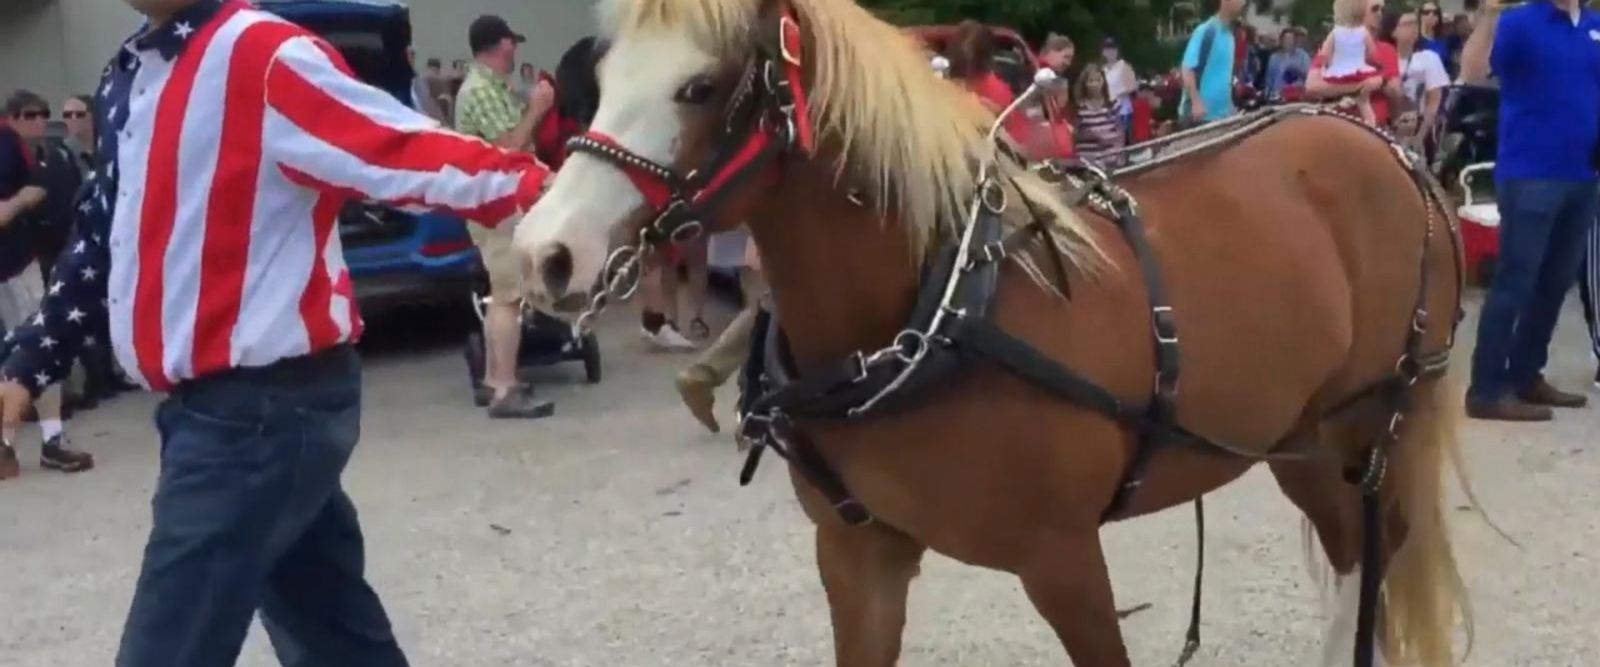 VIDEO: Ponies running scared injure 3 in Wisconsin Memorial Day parade